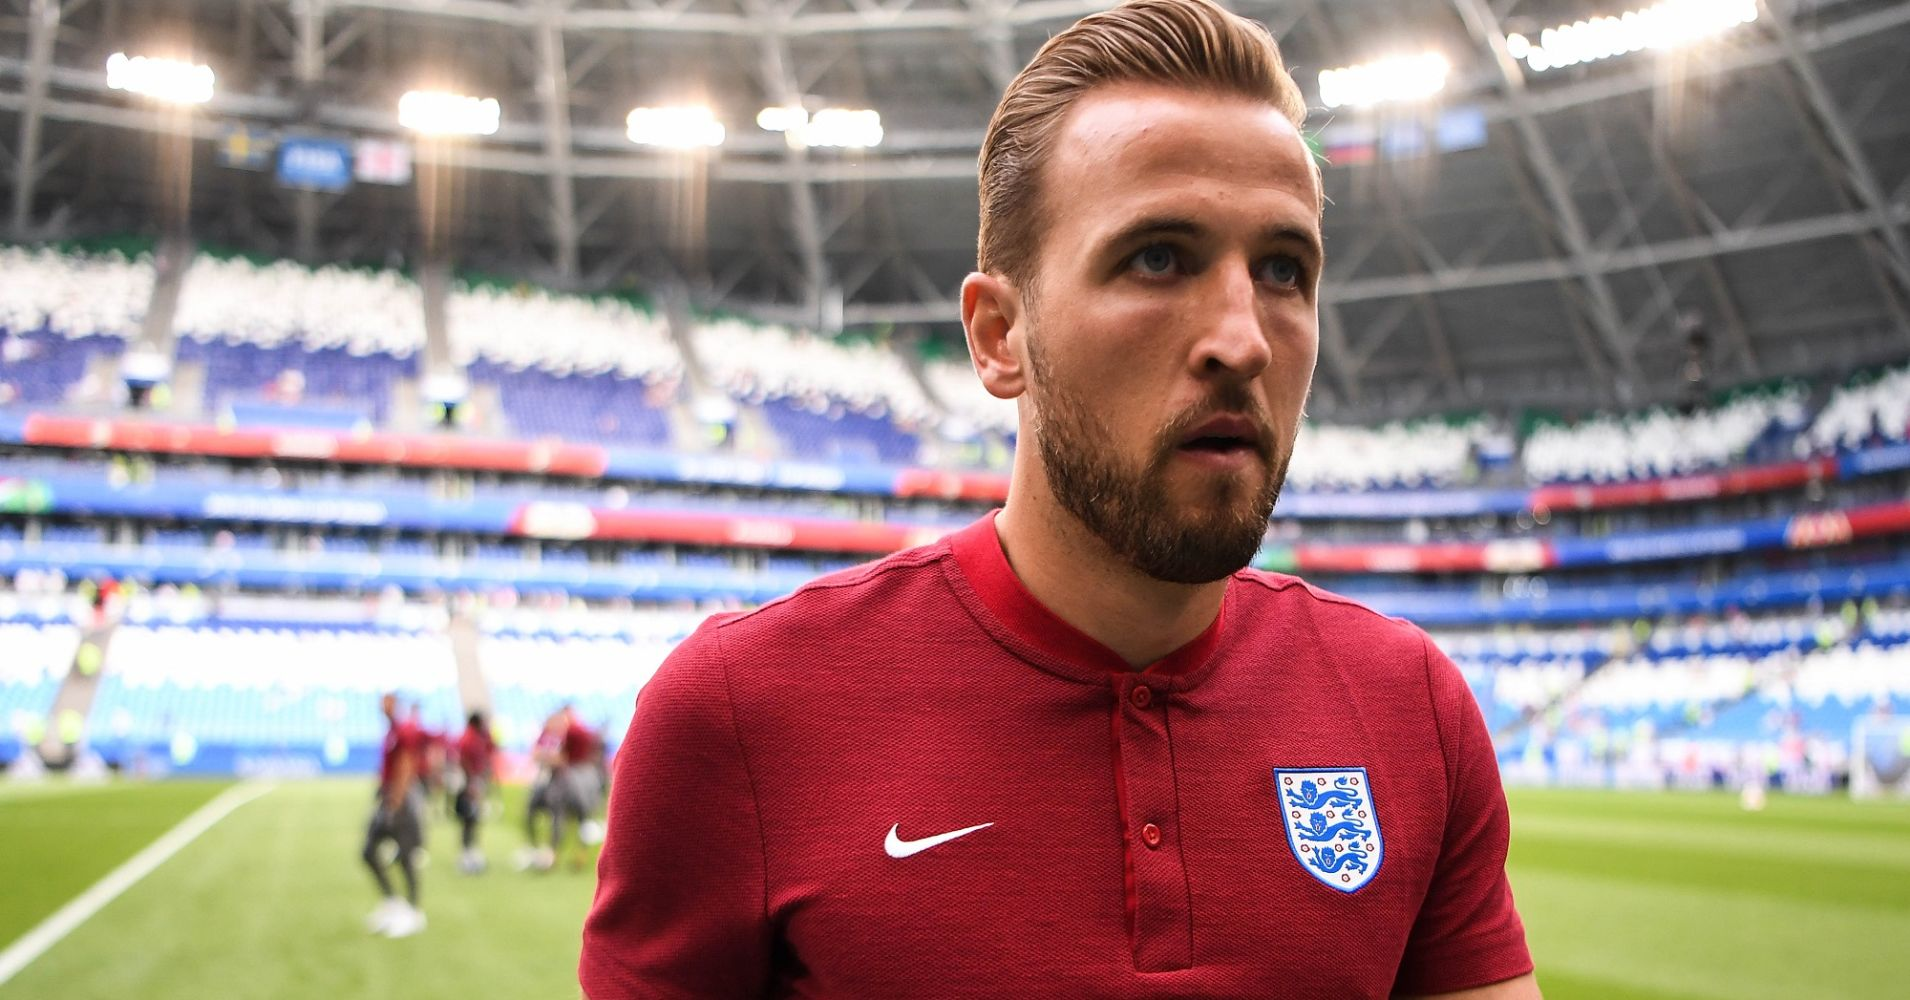 Club rivalries will not split England camp - Kane